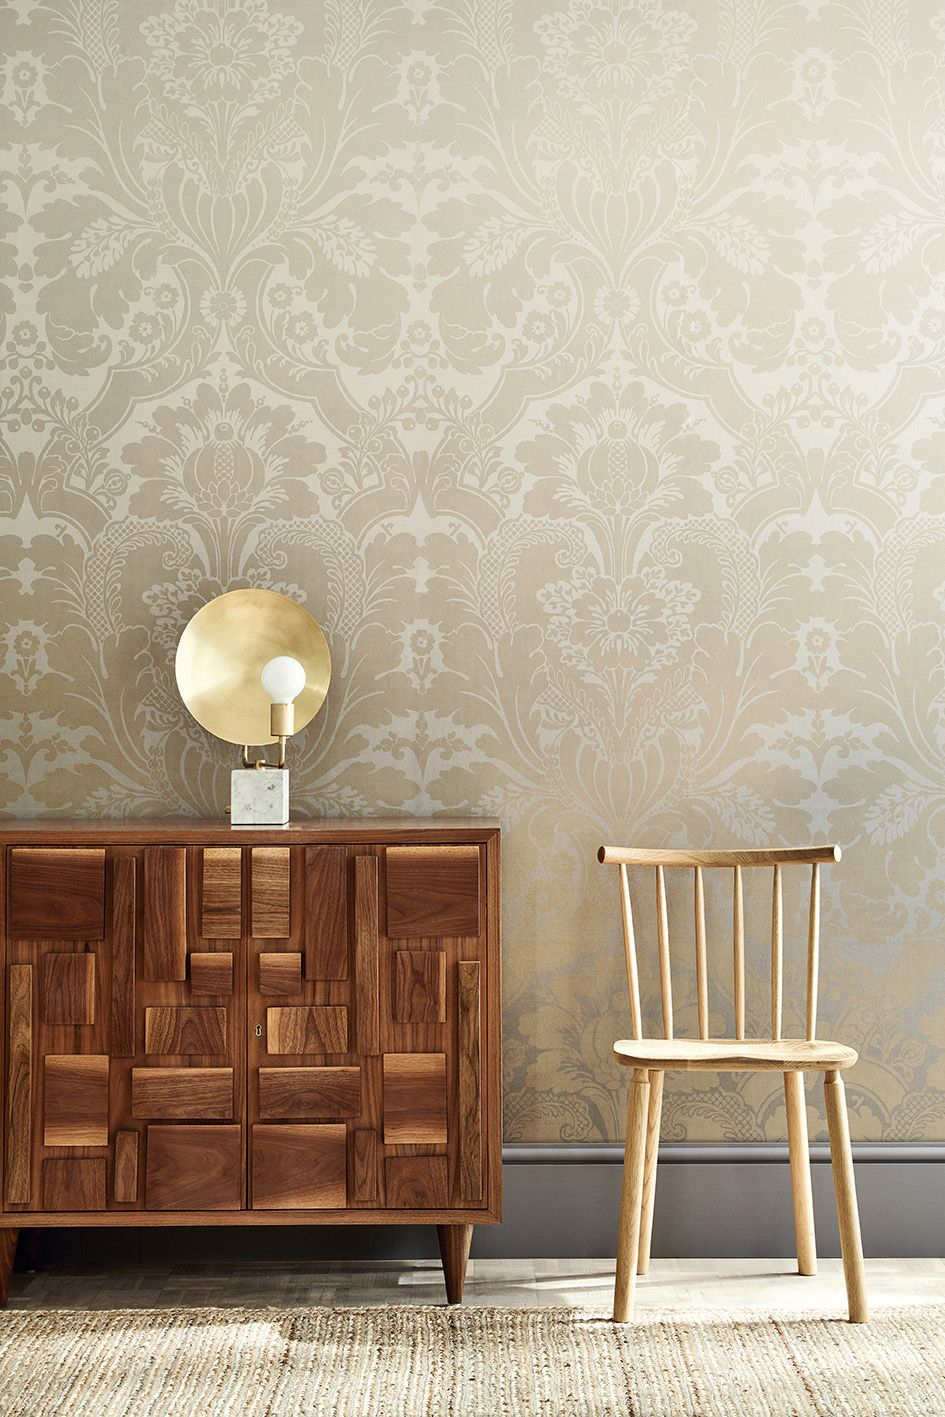 Suede Behang Wallpaper St James Park Suede Fade Skirting Dark Lead Colour